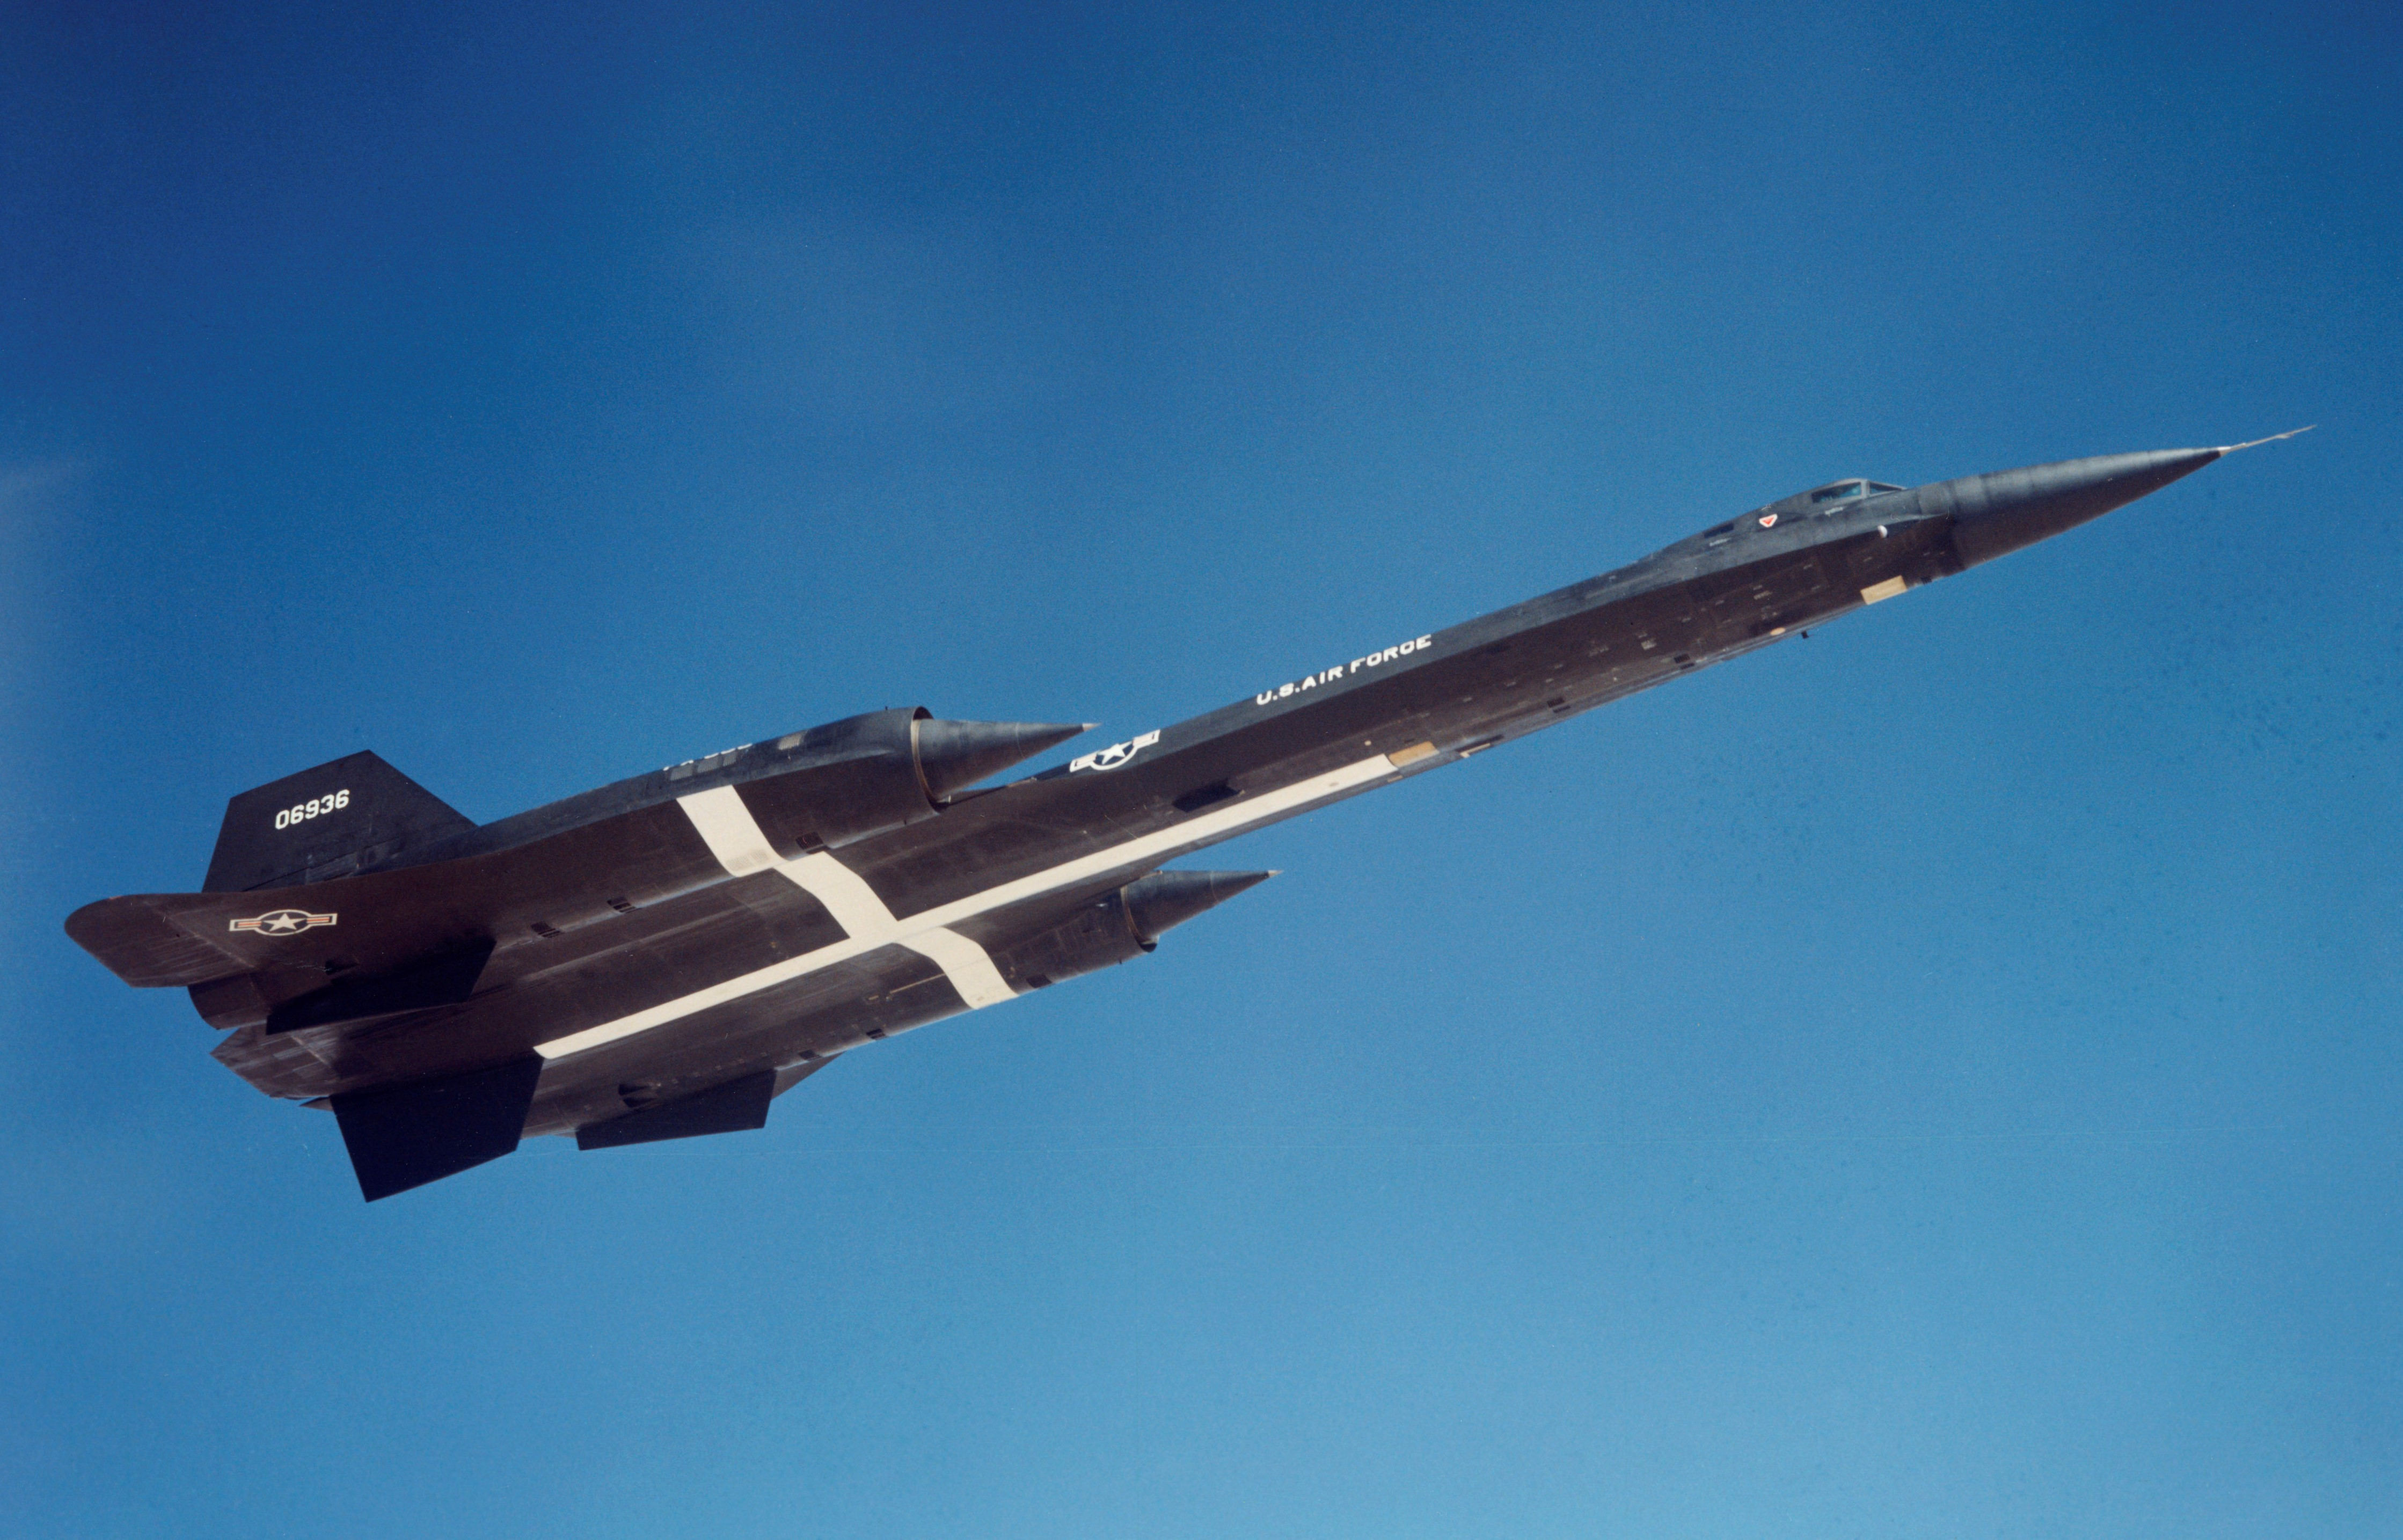 The third YF-12a departs Edwards AFB in 1965. The white cross painted on the lower fuselage assisted in tracking the aircraft during the speed and altitude record flights. (Lockheed photo)